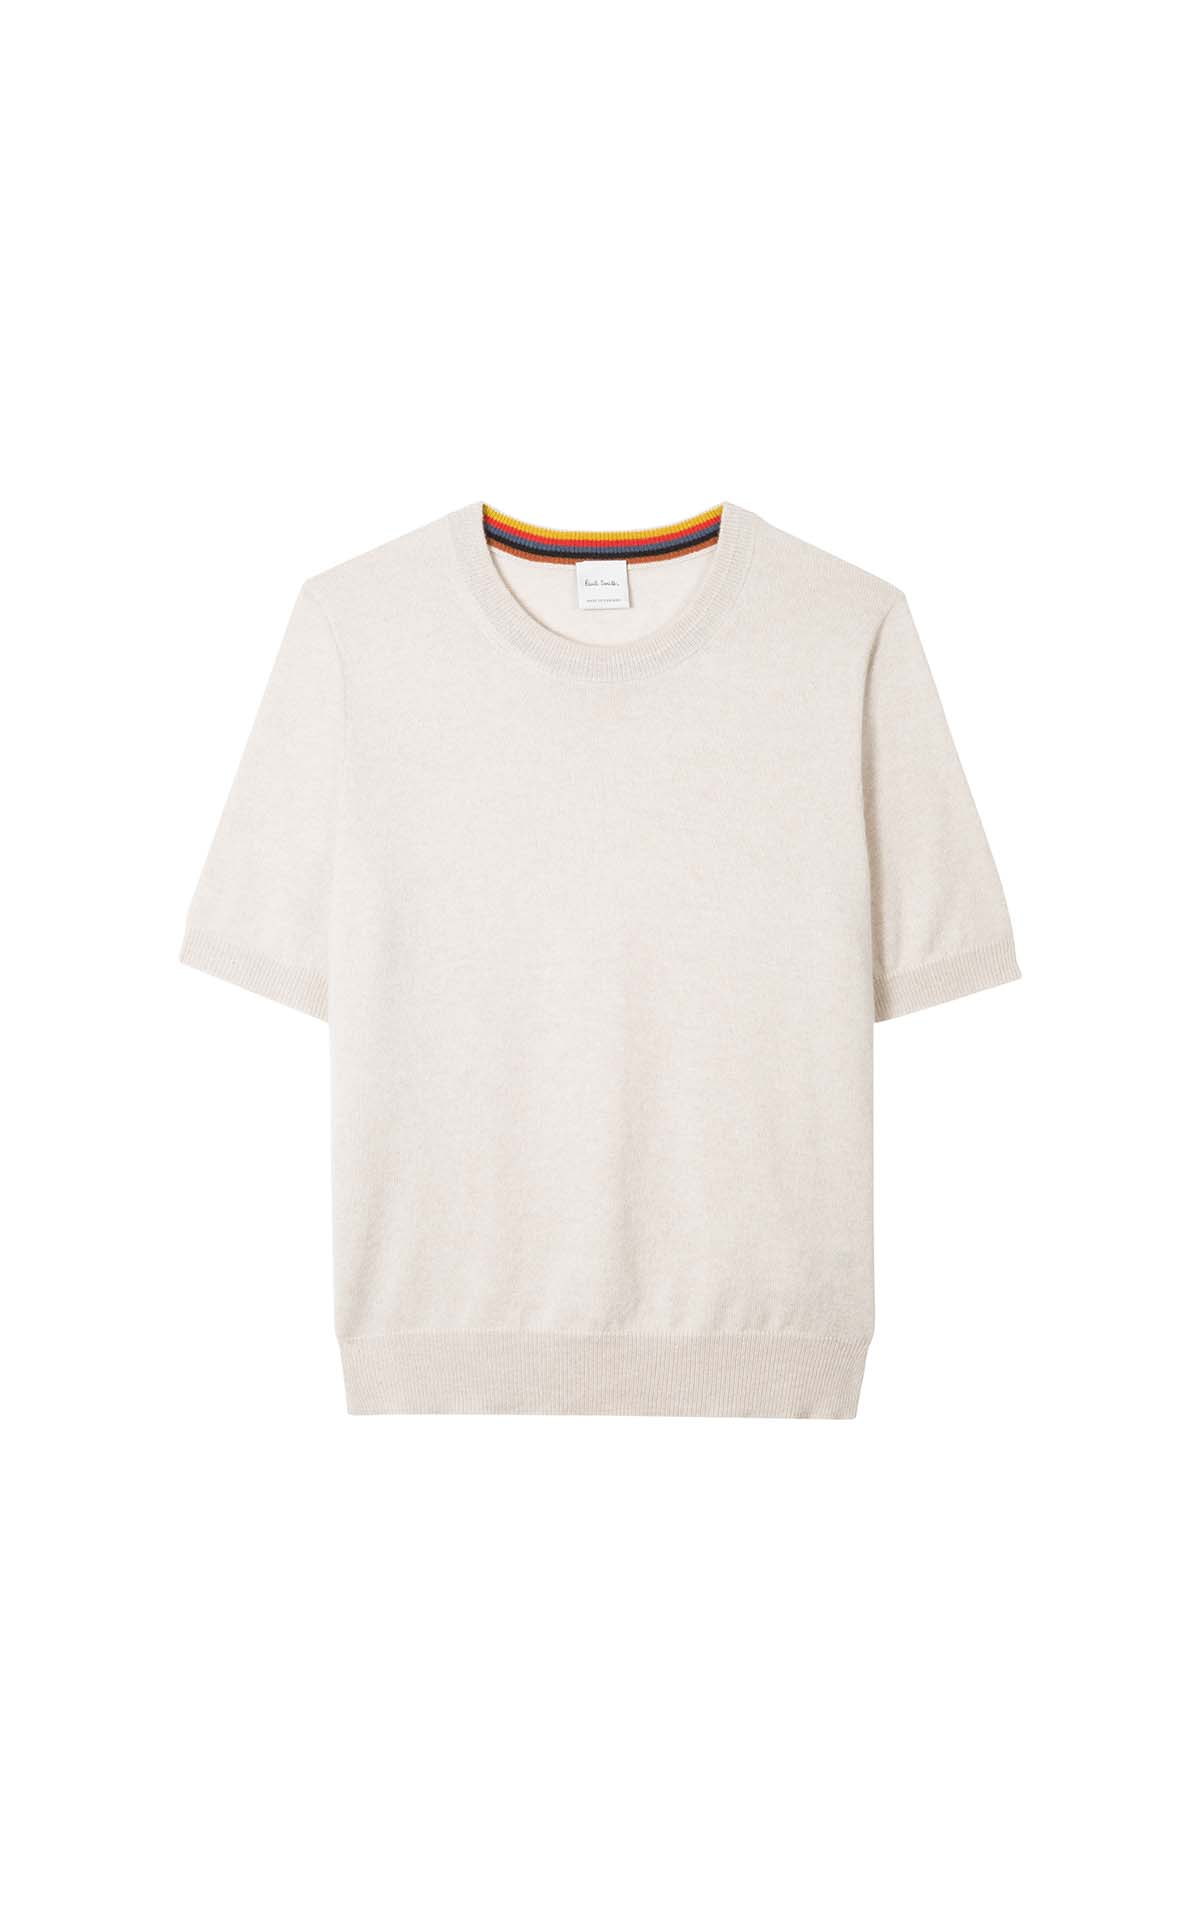 Paul Smith Women's White Top at the Bicester Village Shopping Collection